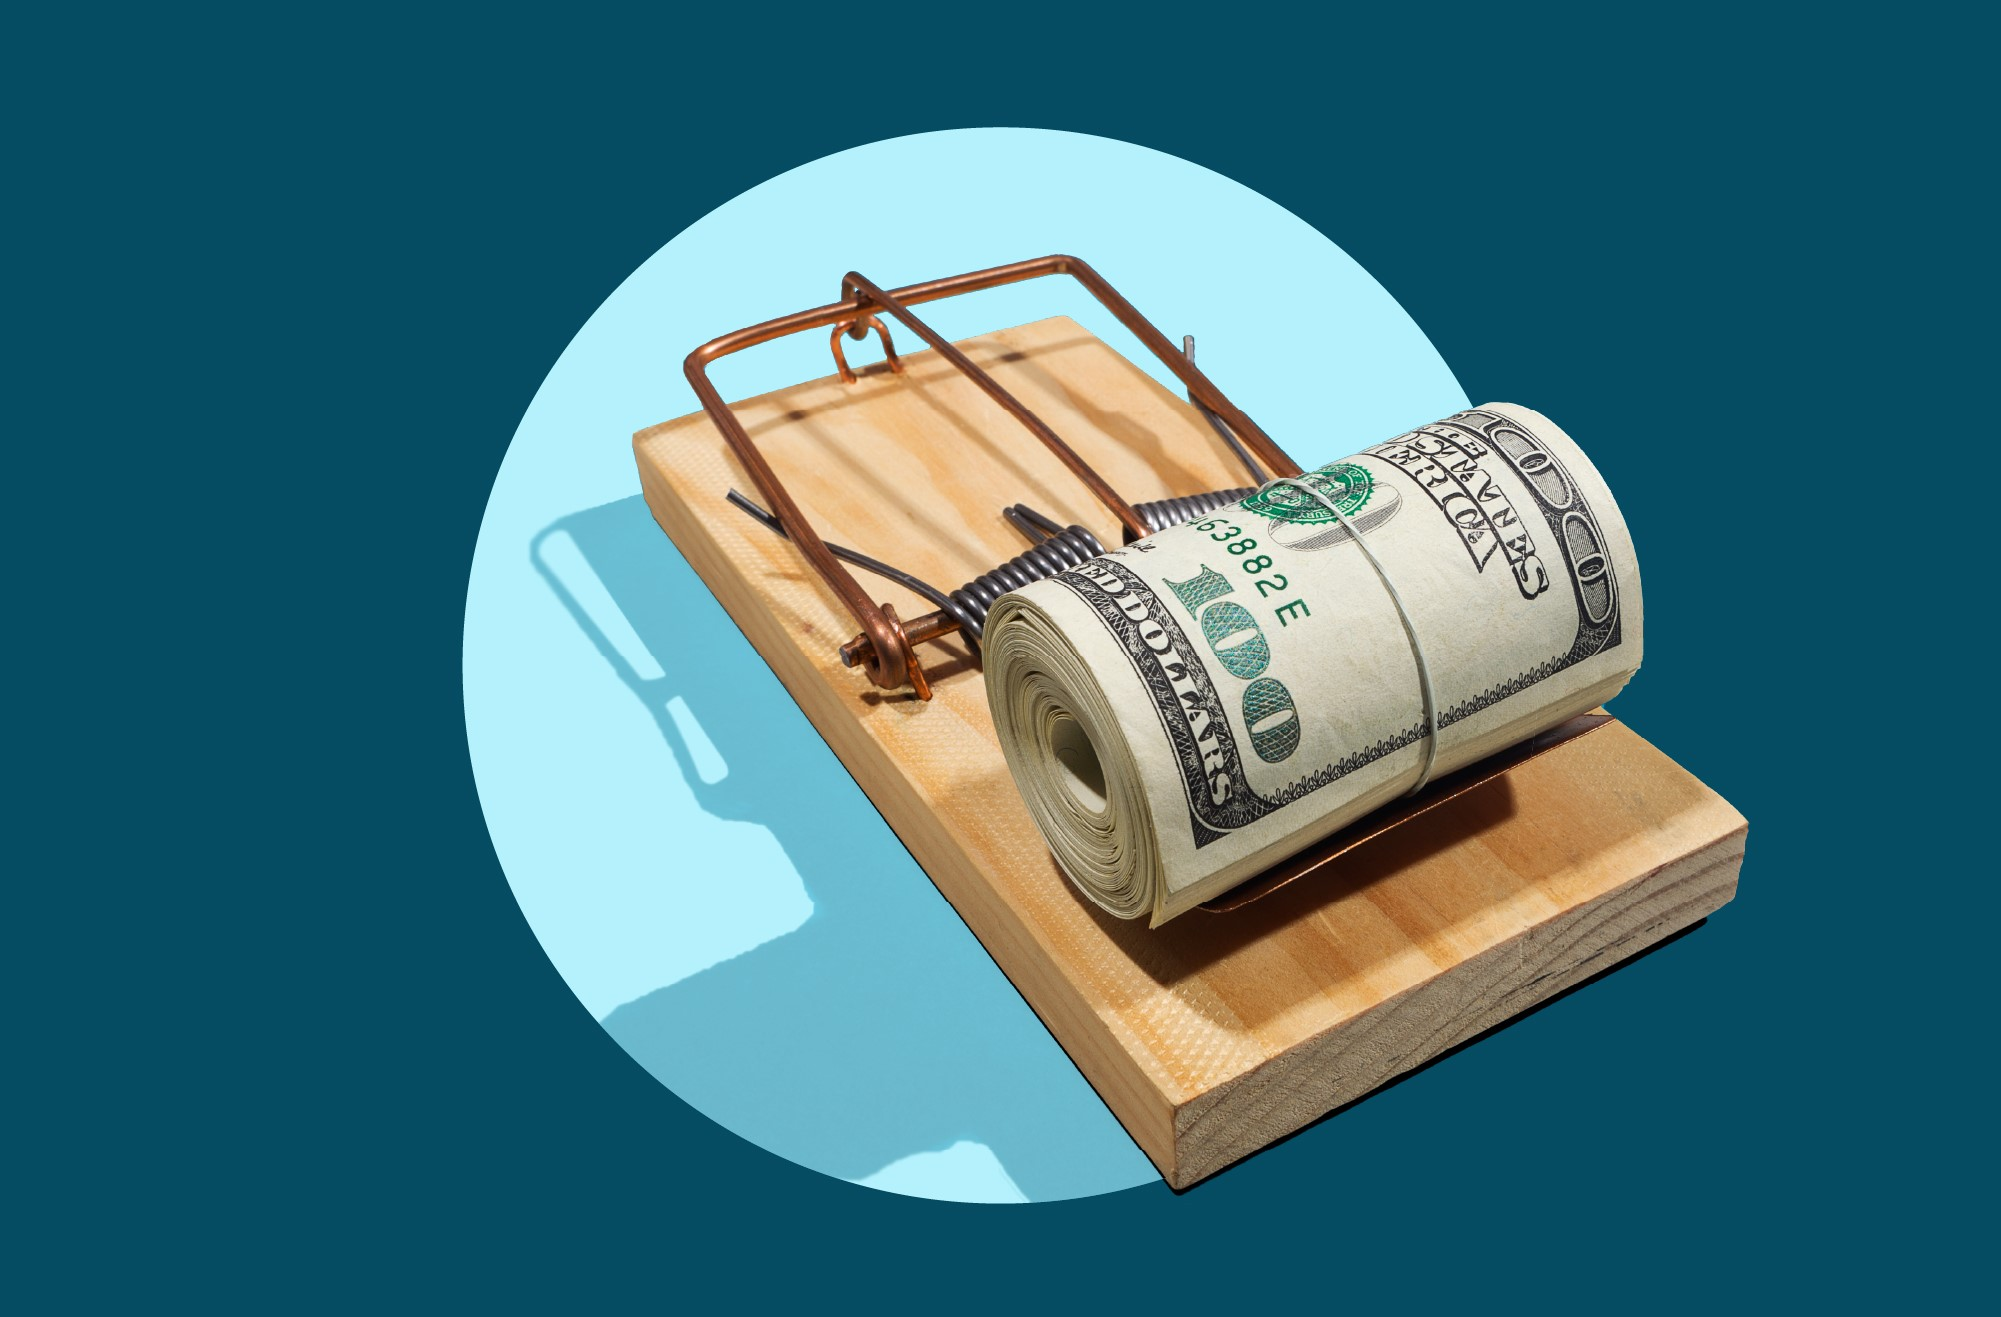 Photo to accompany story about personal loan scams.